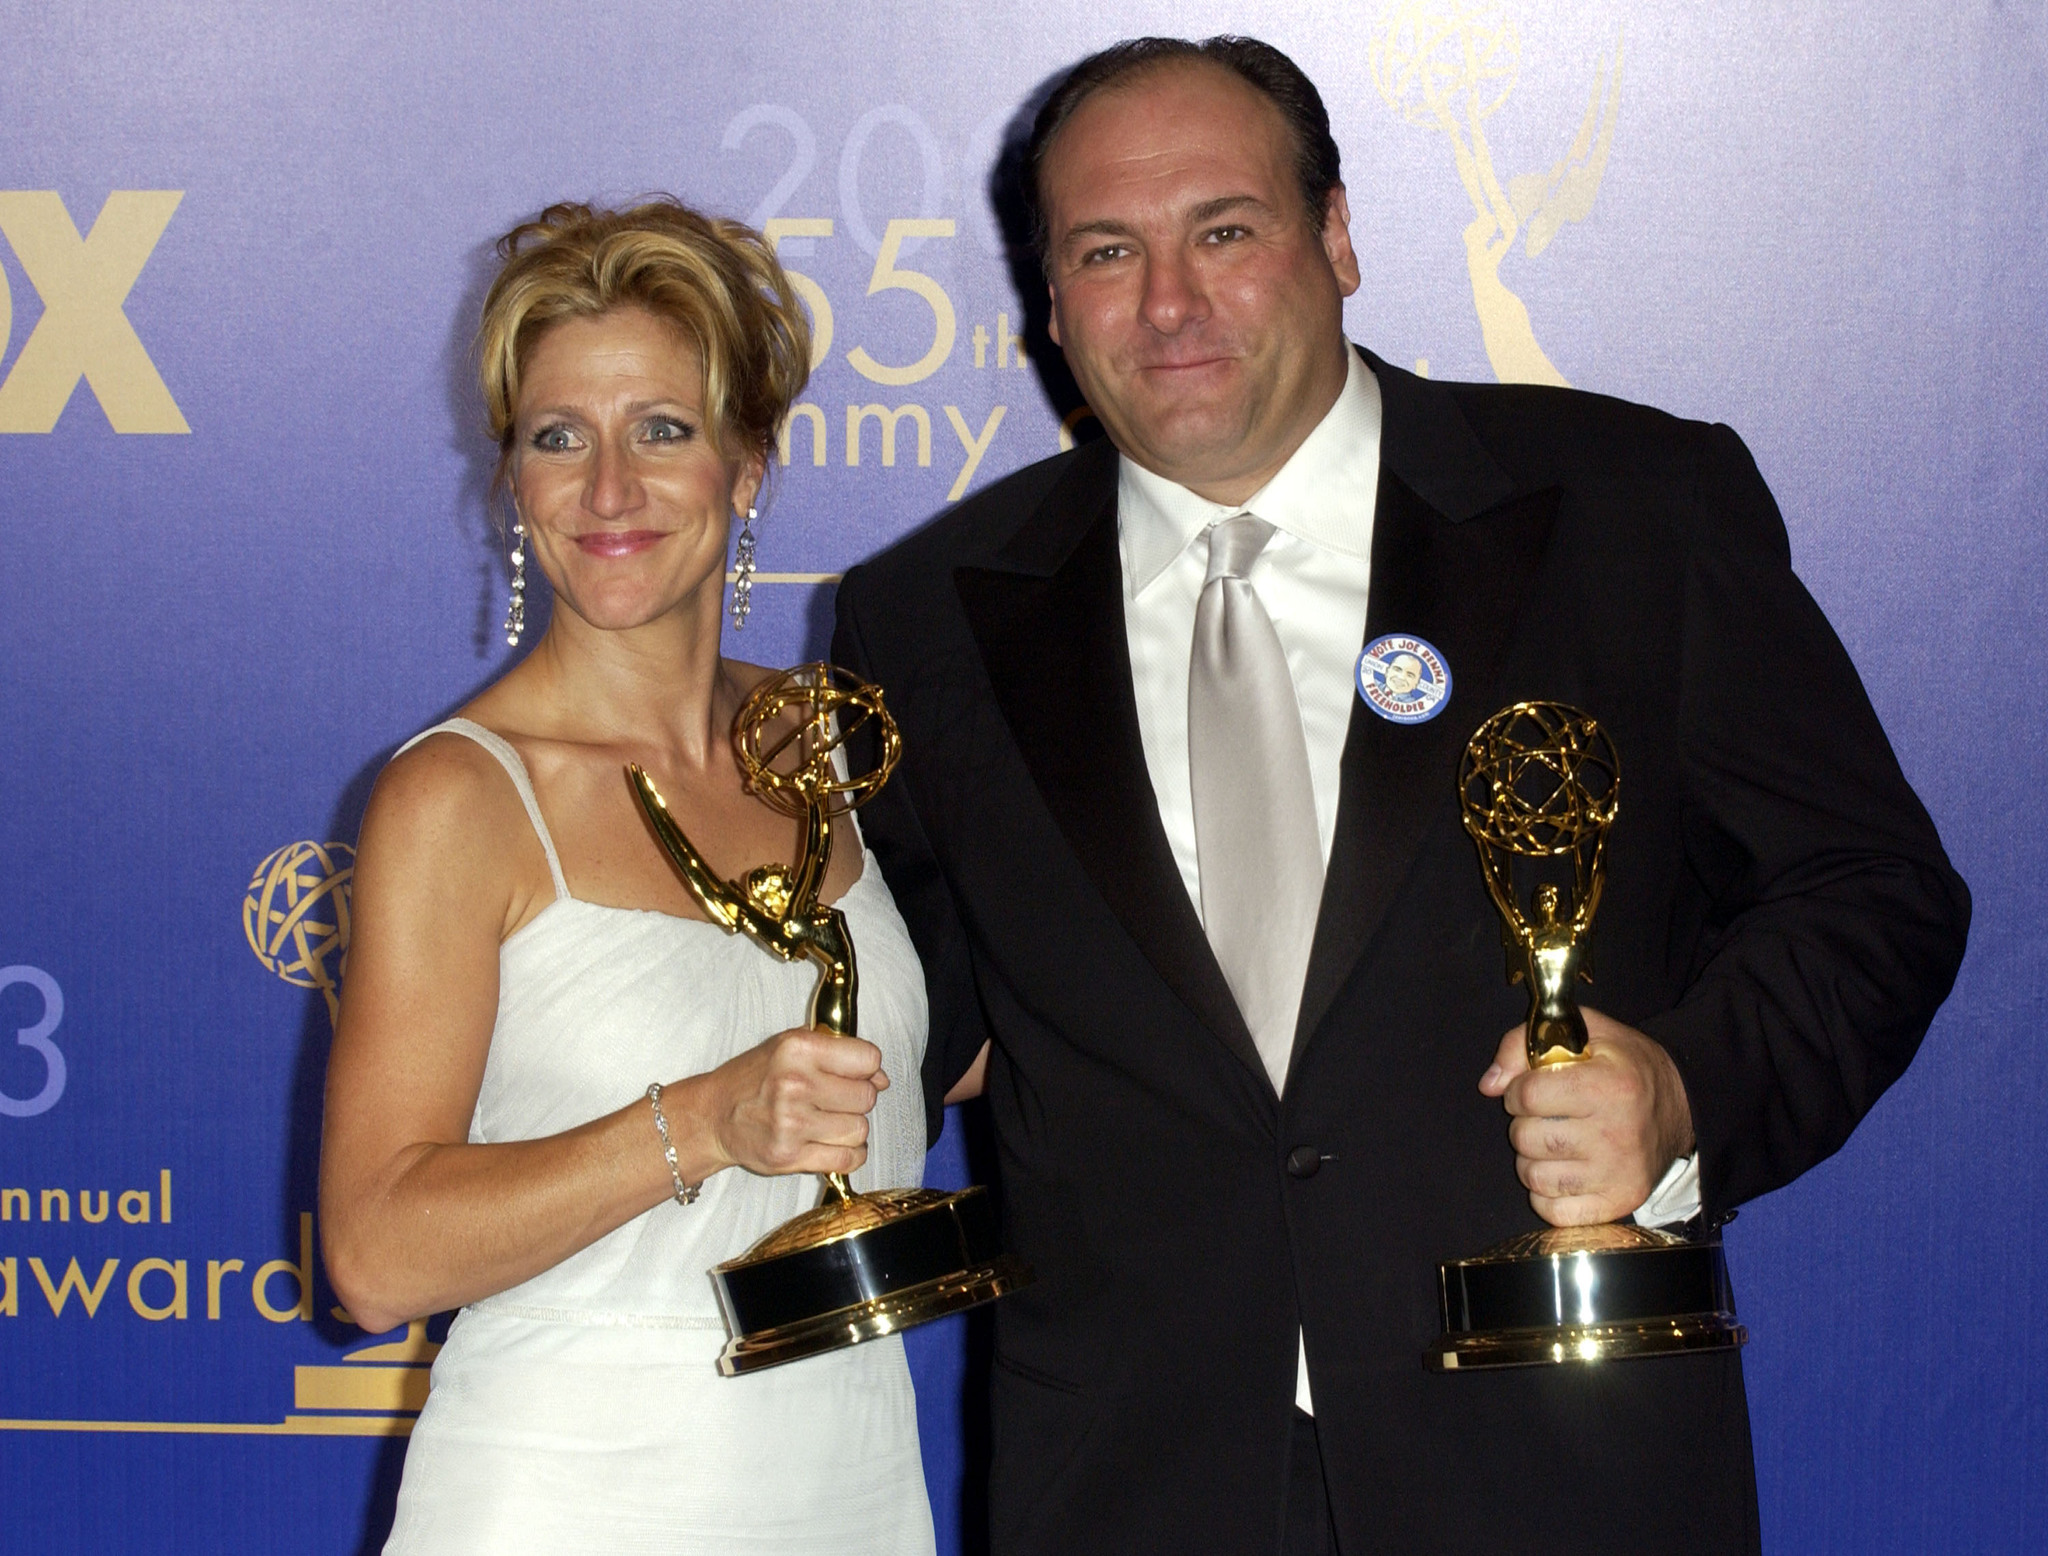 James Gandolfini and Edie Falco at an event for The 55th Annual Primetime Emmy Awards (2003)